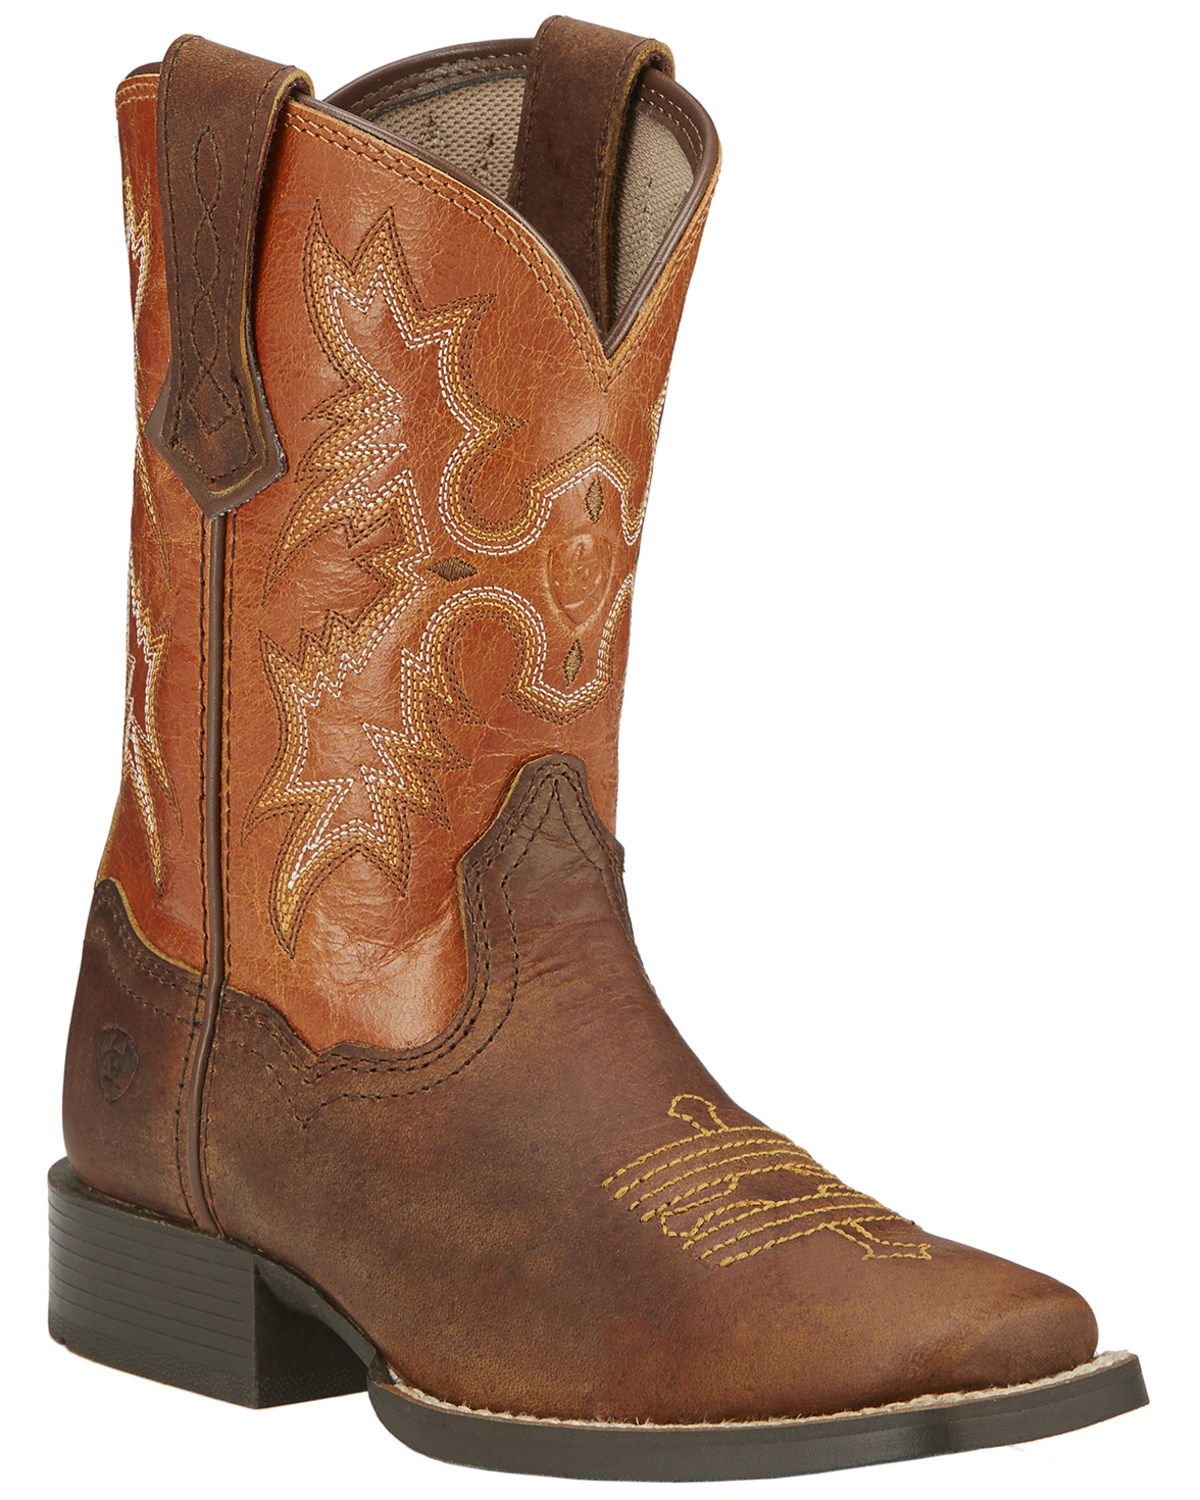 34627bbd292 Ariat Boys' Tombstone Cowboy Boots - Square Toe